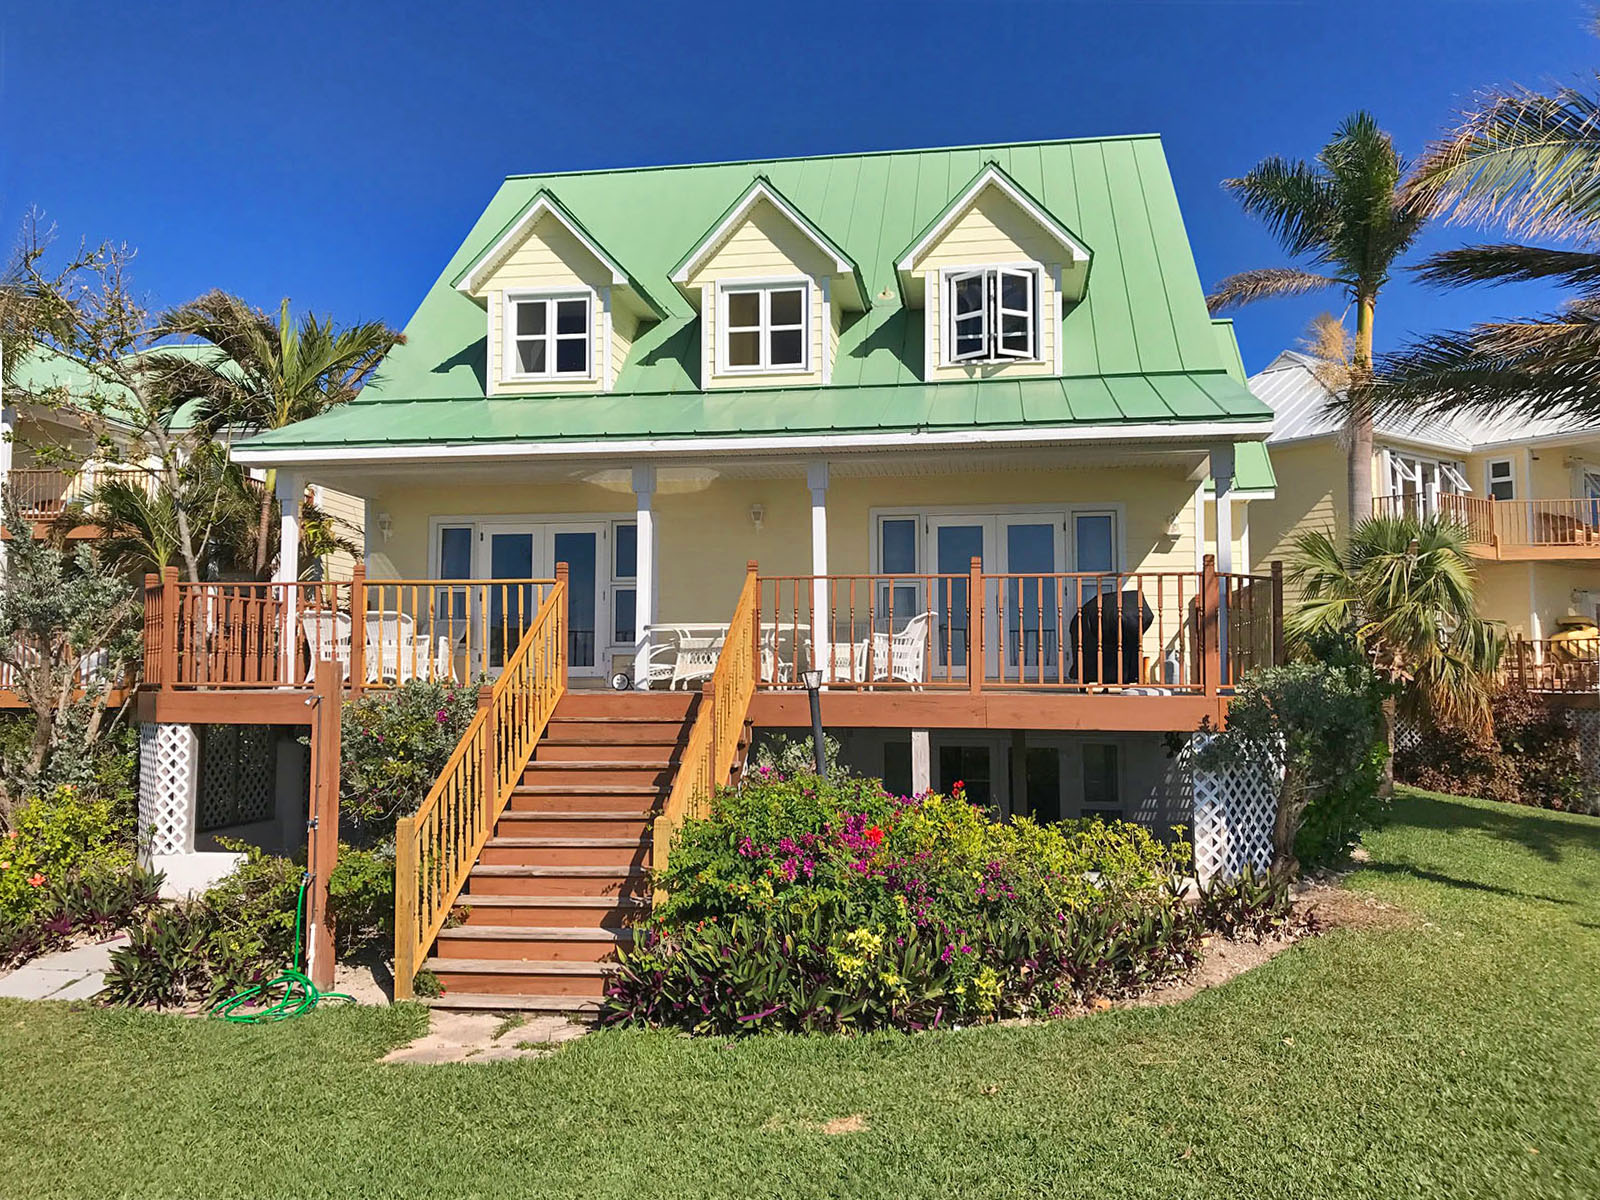 Single Family Home for Sale at REDUCED!! Fantastic Oceanfront Home in Prestigious Gated Community Bahamas